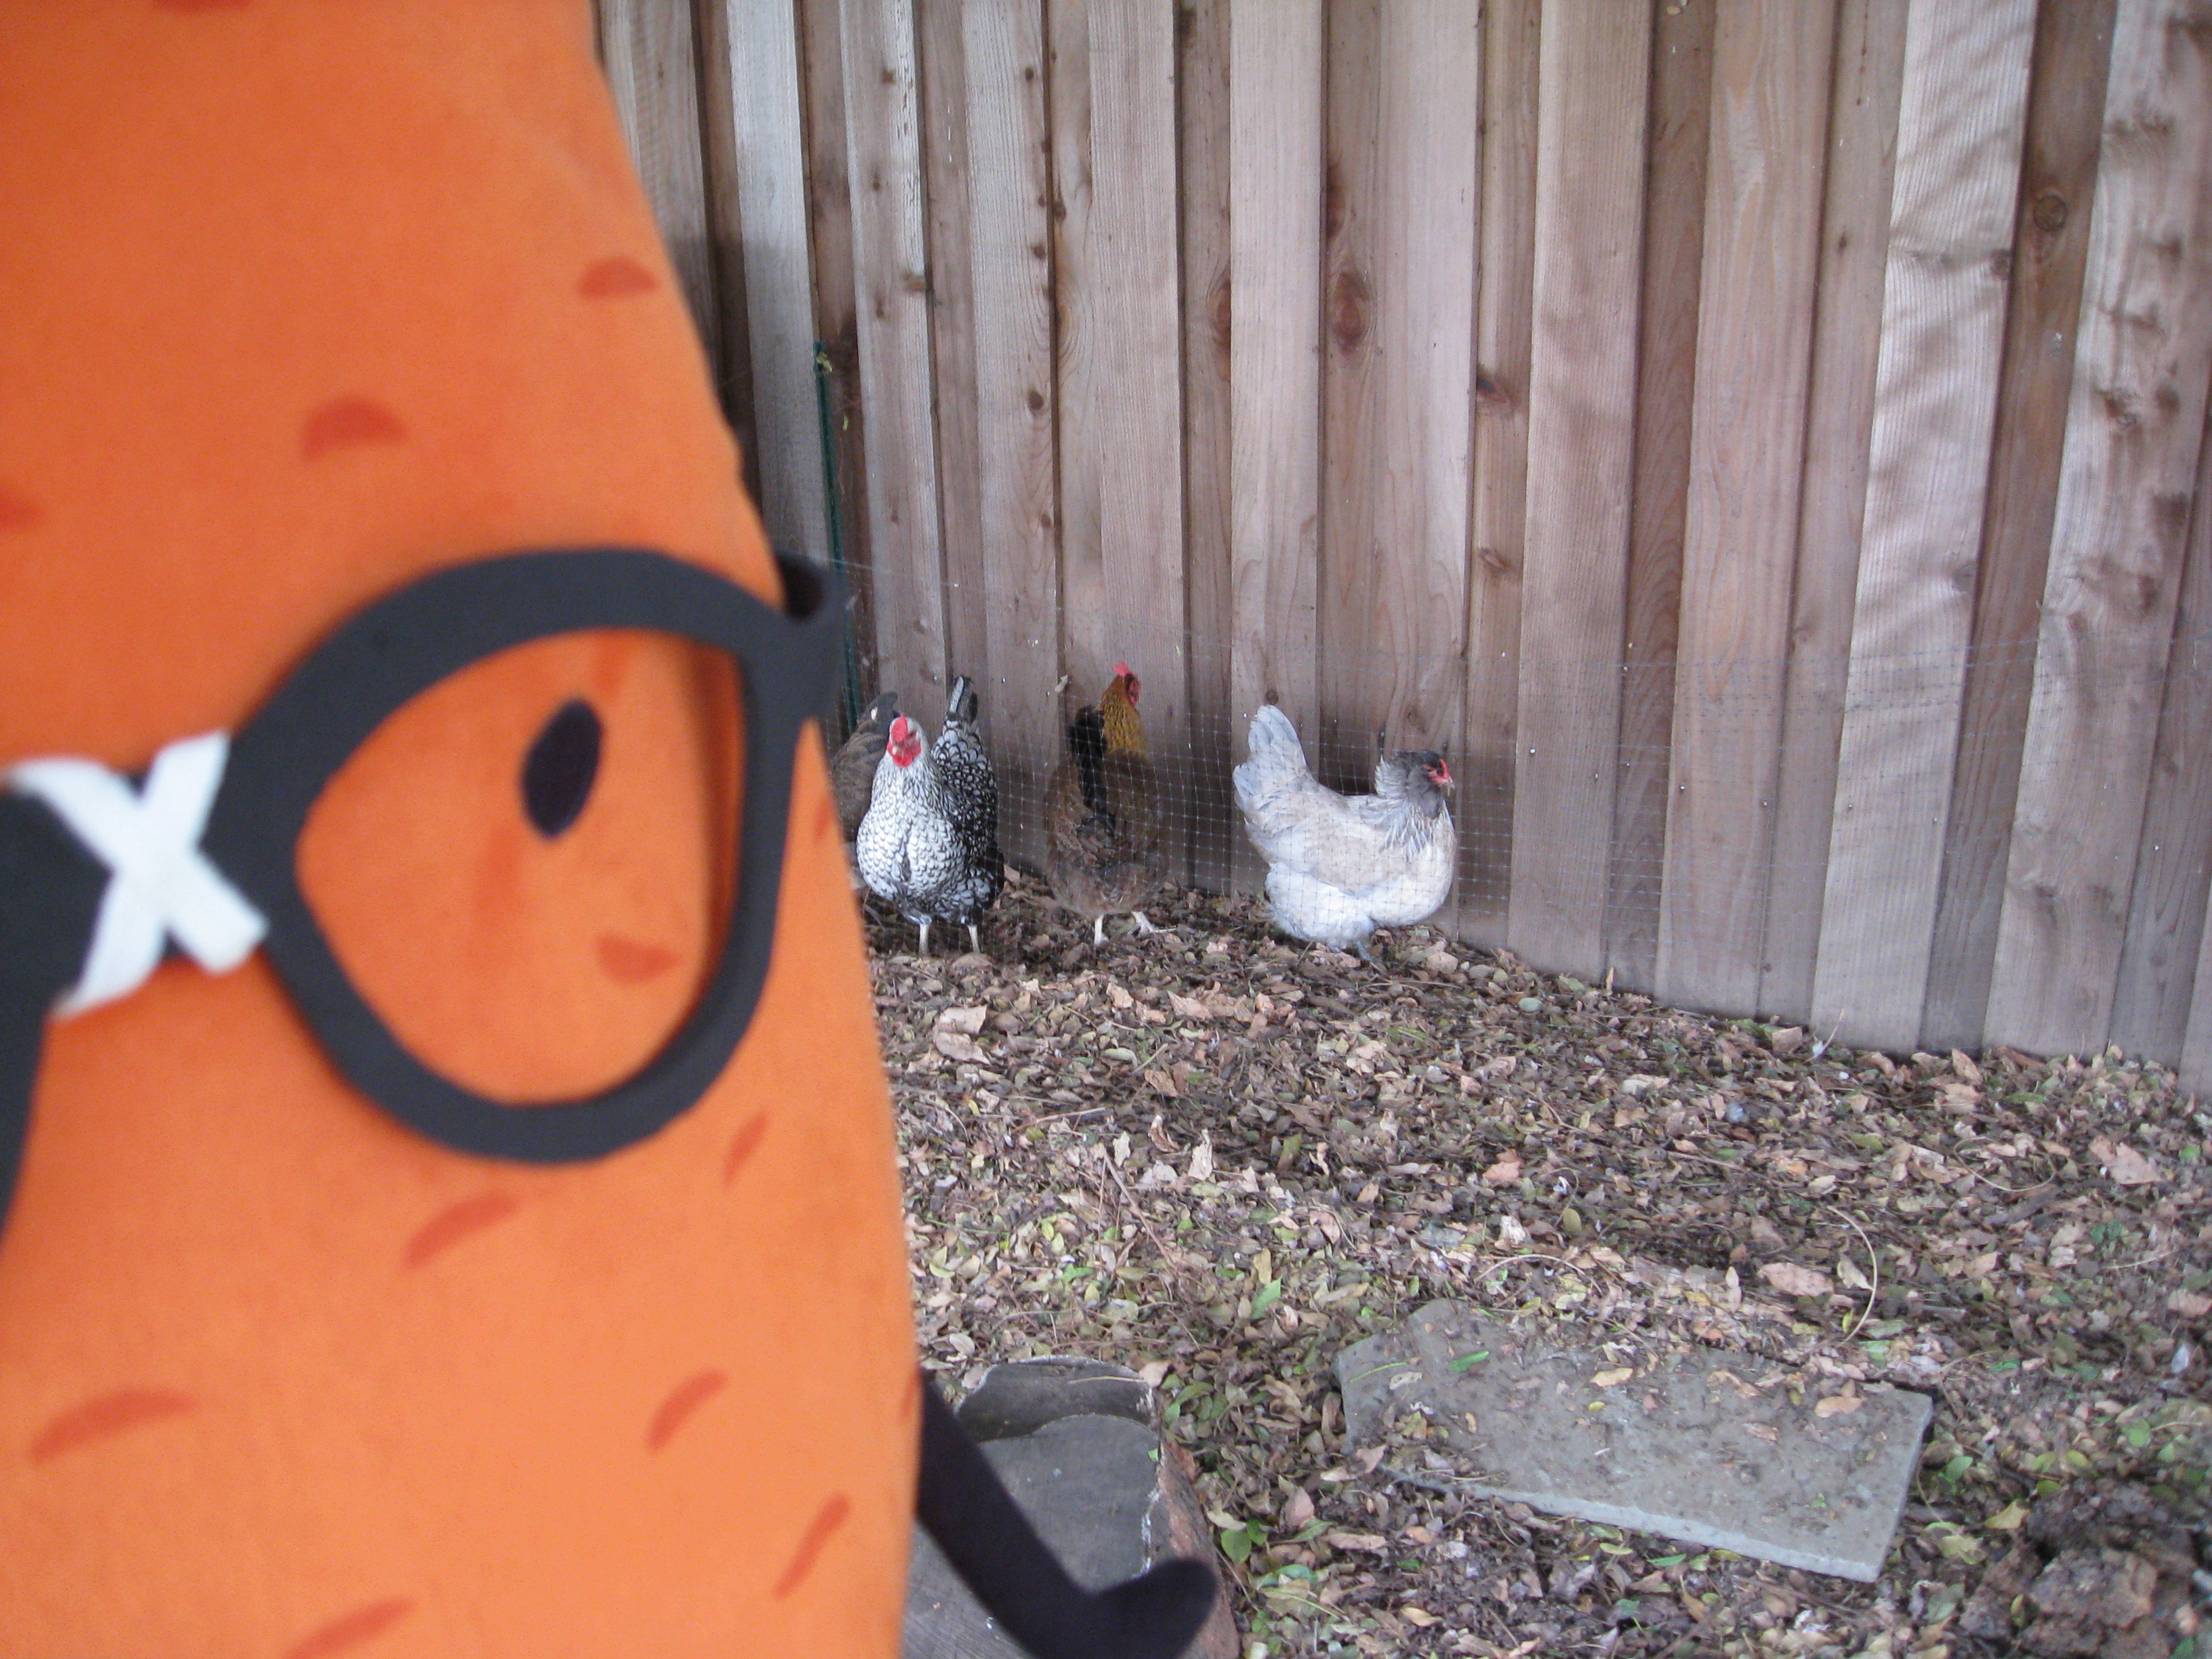 Gardenerd hangin' with the chickens in Mar Vista, CA.